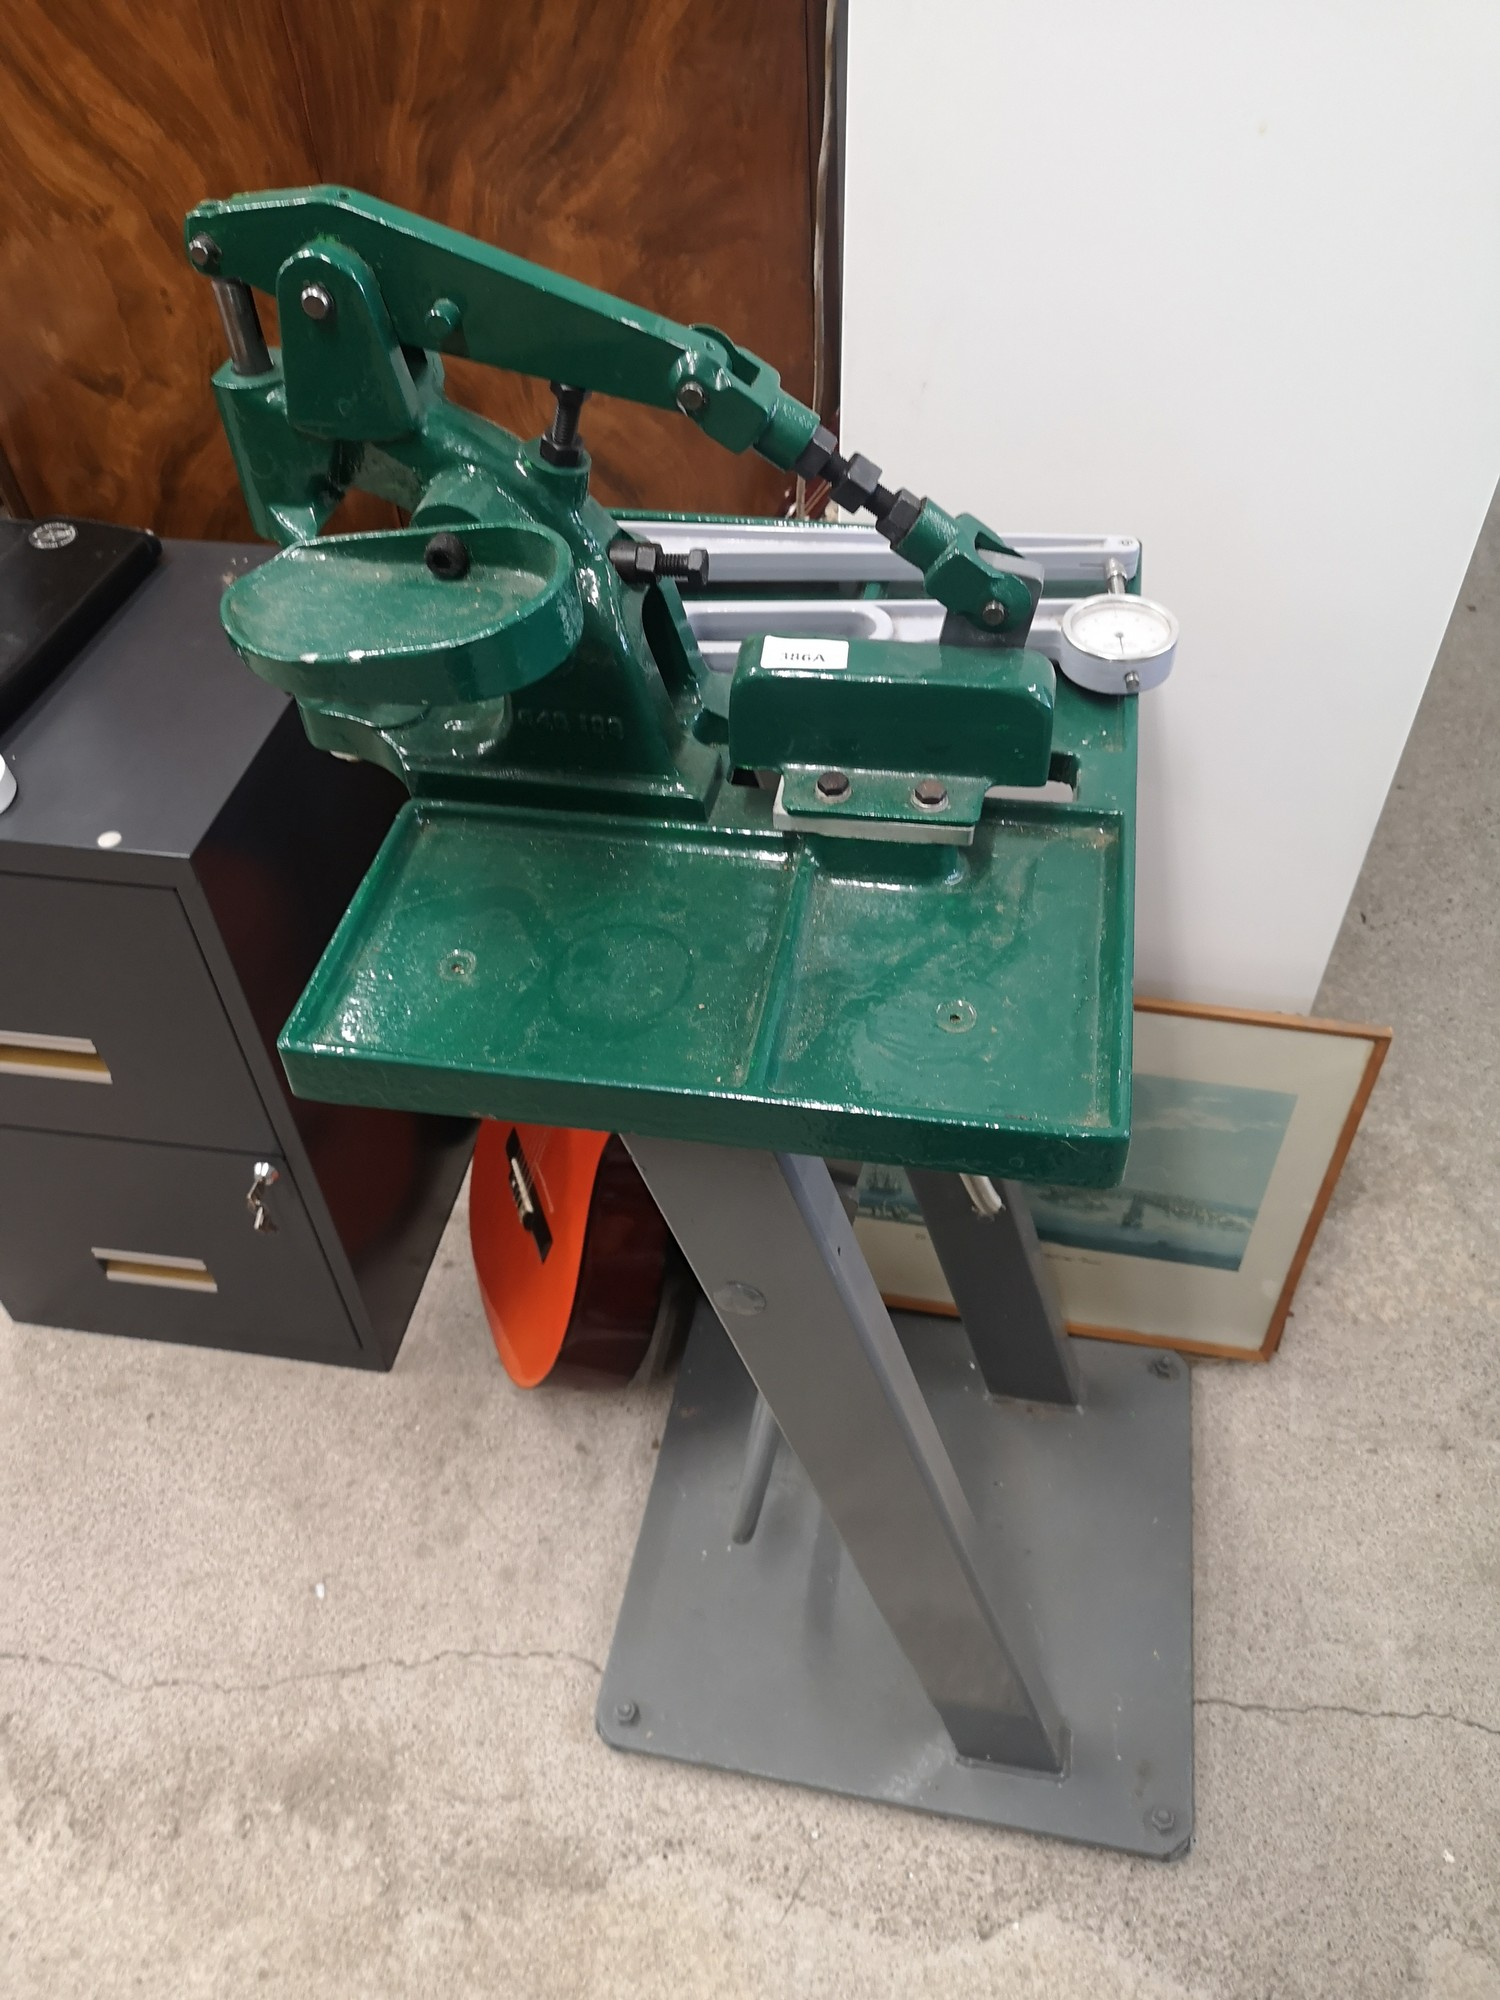 Large heavy metal leather punch tool bench.